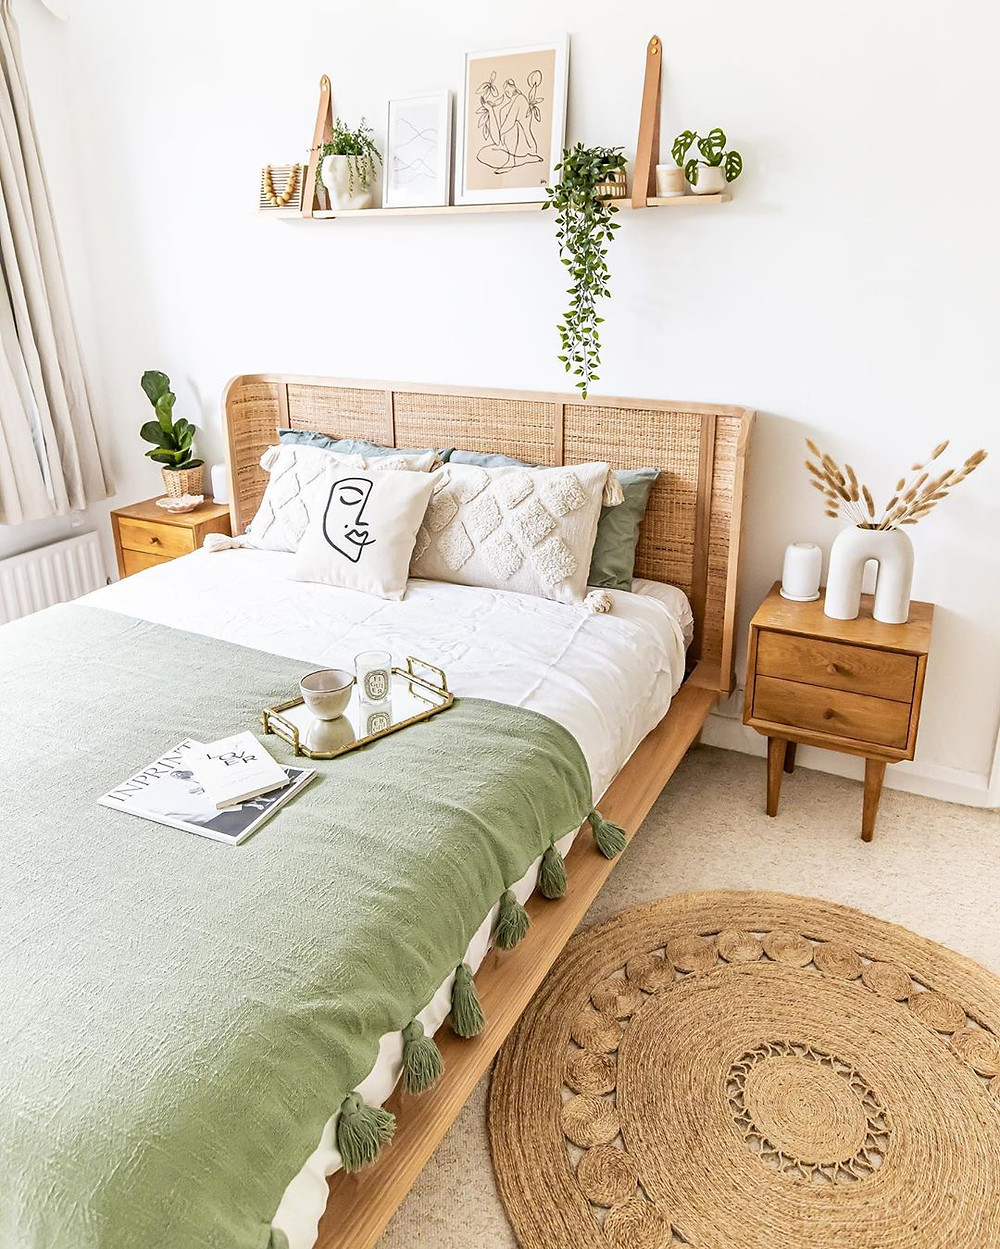 boho bedroom with rattan wooden bedroom, plants, and green bed sheets